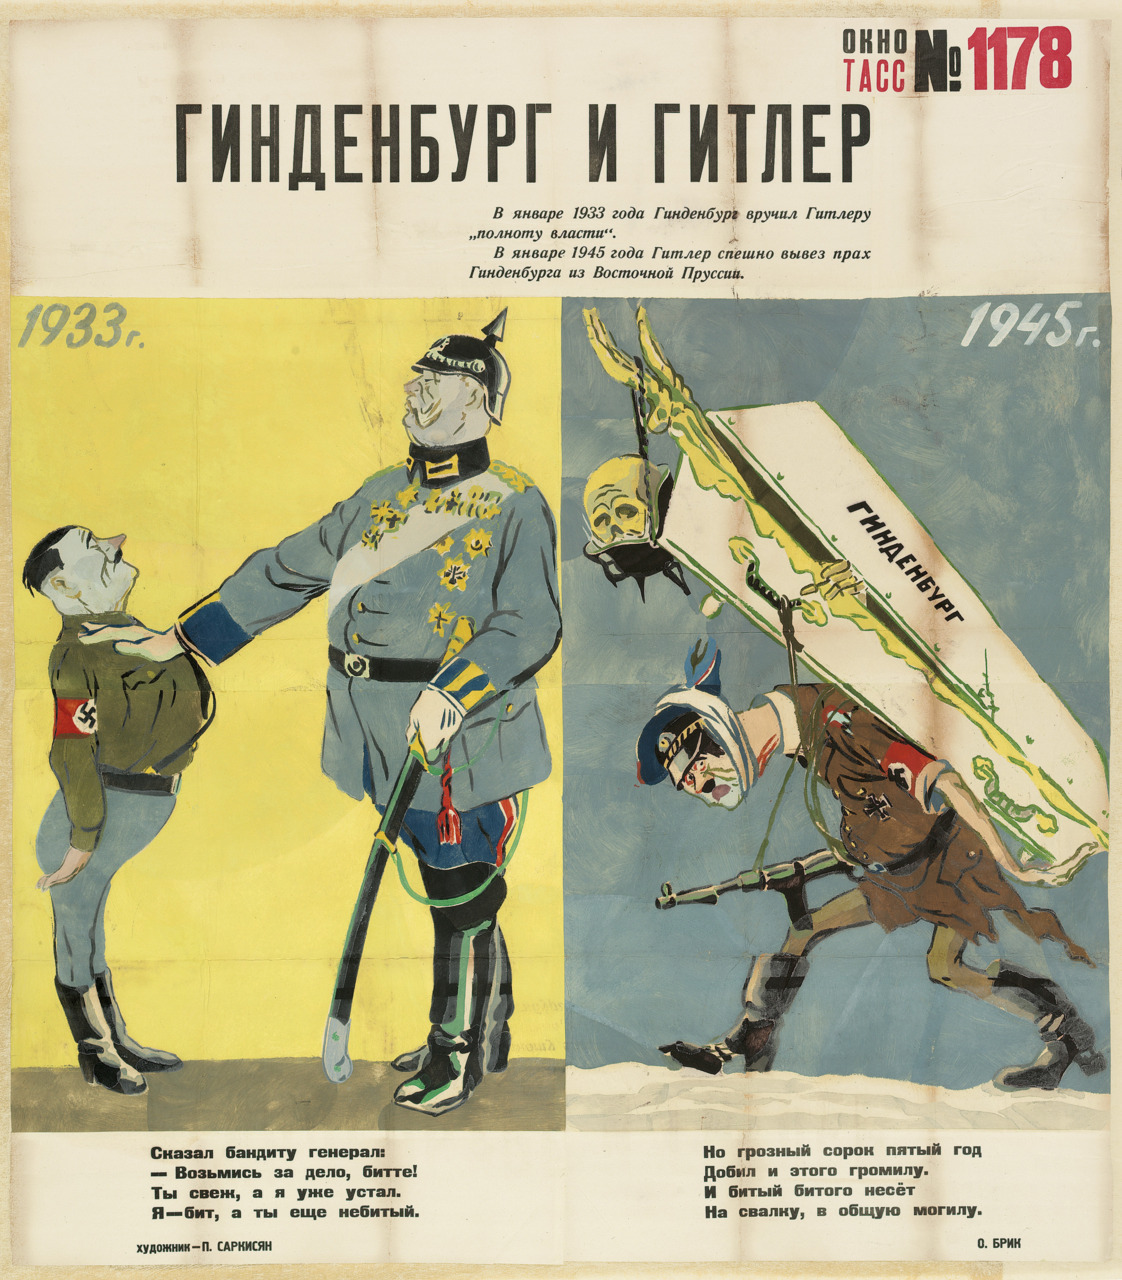 Petr Ashotovich SarkisianRussian, 1922-1970Hindenburg and Hitler, February 28, 1945Gift of the USSR Society for Cultural Relations with Foreign Countries